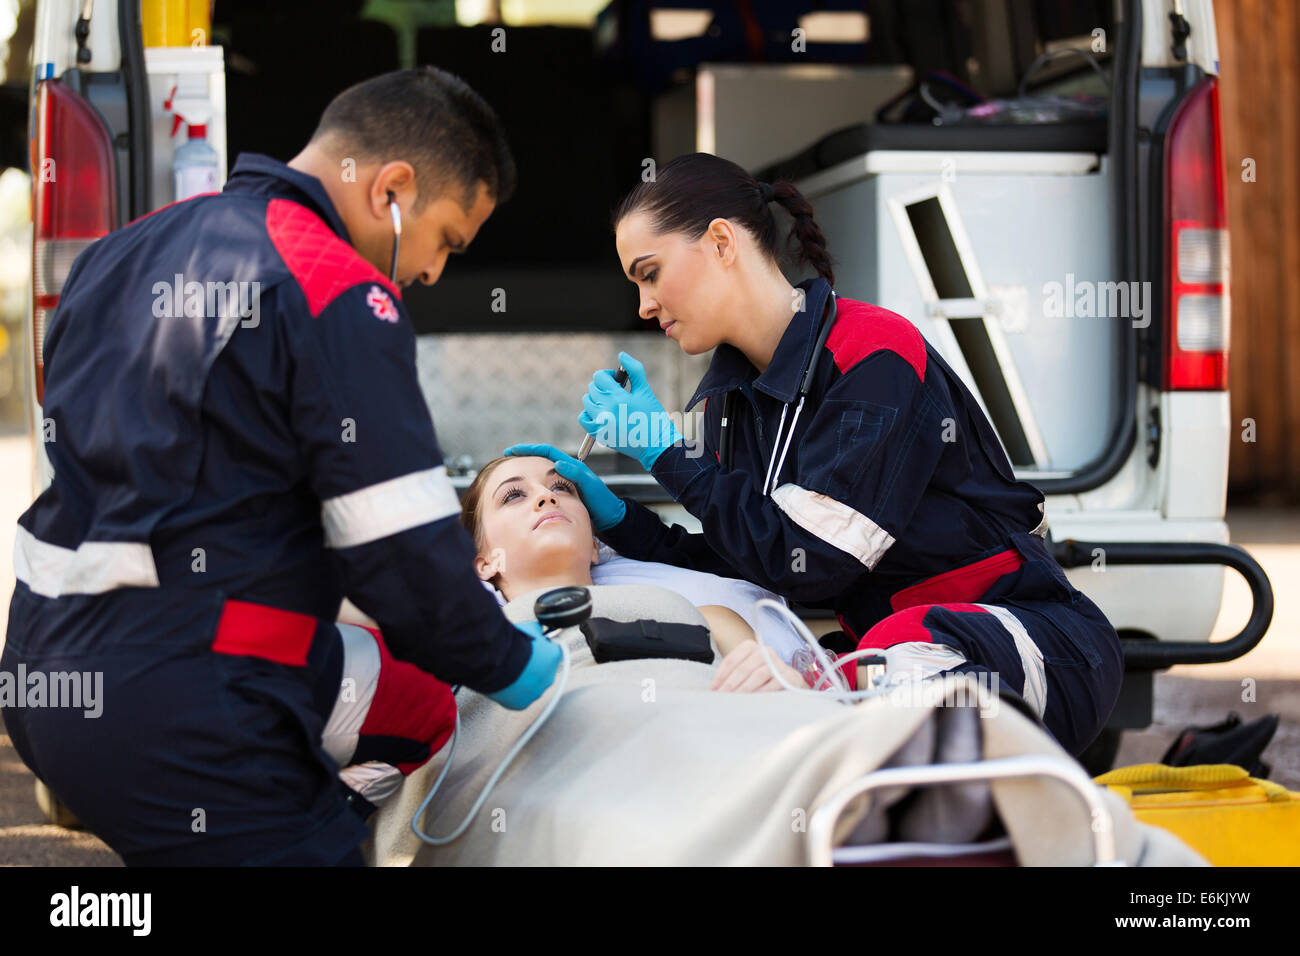 paramedic team examining young female patient - Stock Image